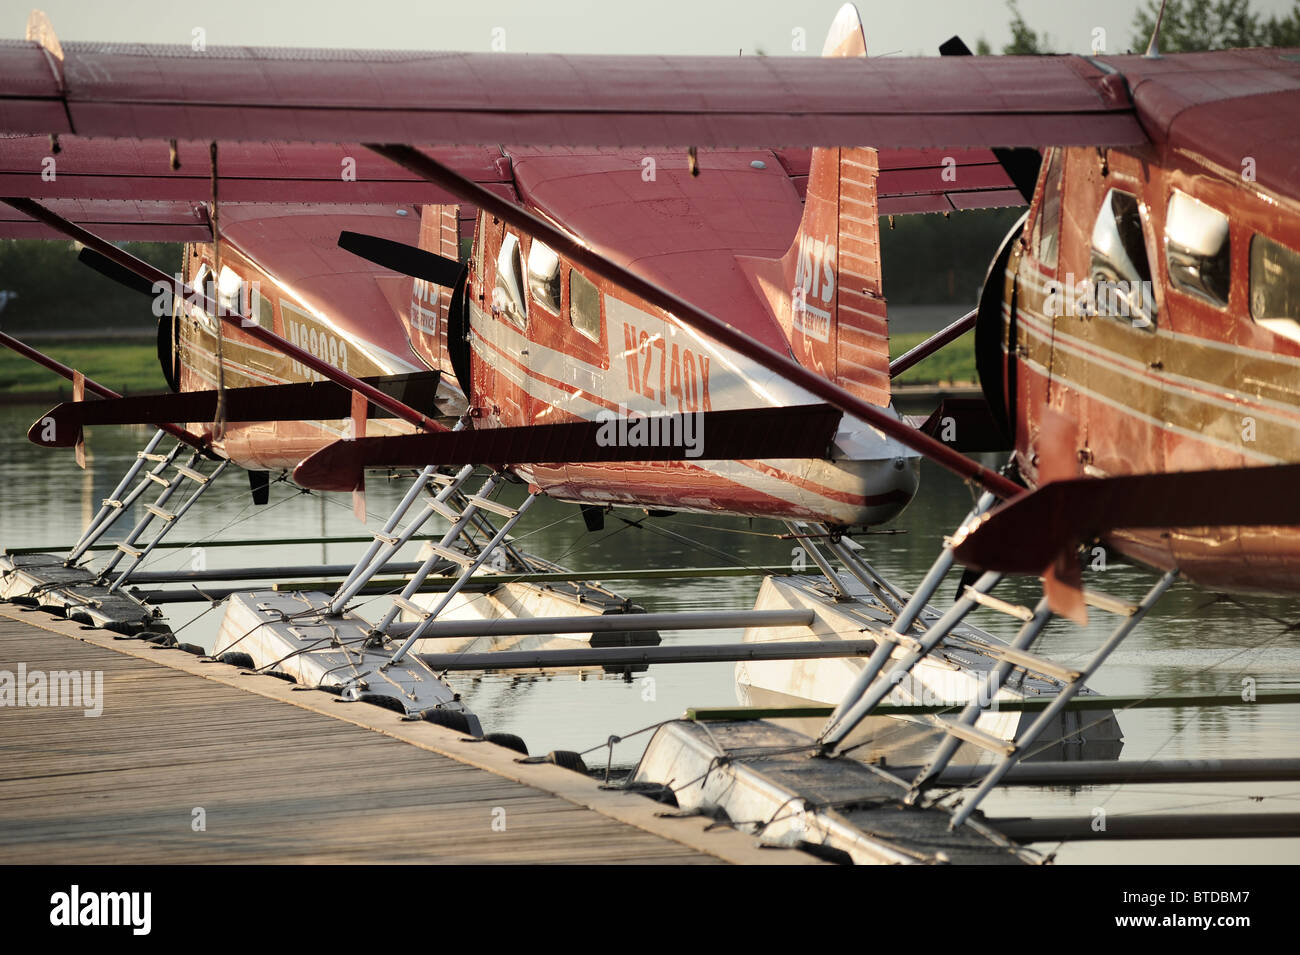 Group of Rust's Flying Service DeHavilland Beaver airplanes docked on Lake Hood in Anchorage, Southcentral Alaska - Stock Image